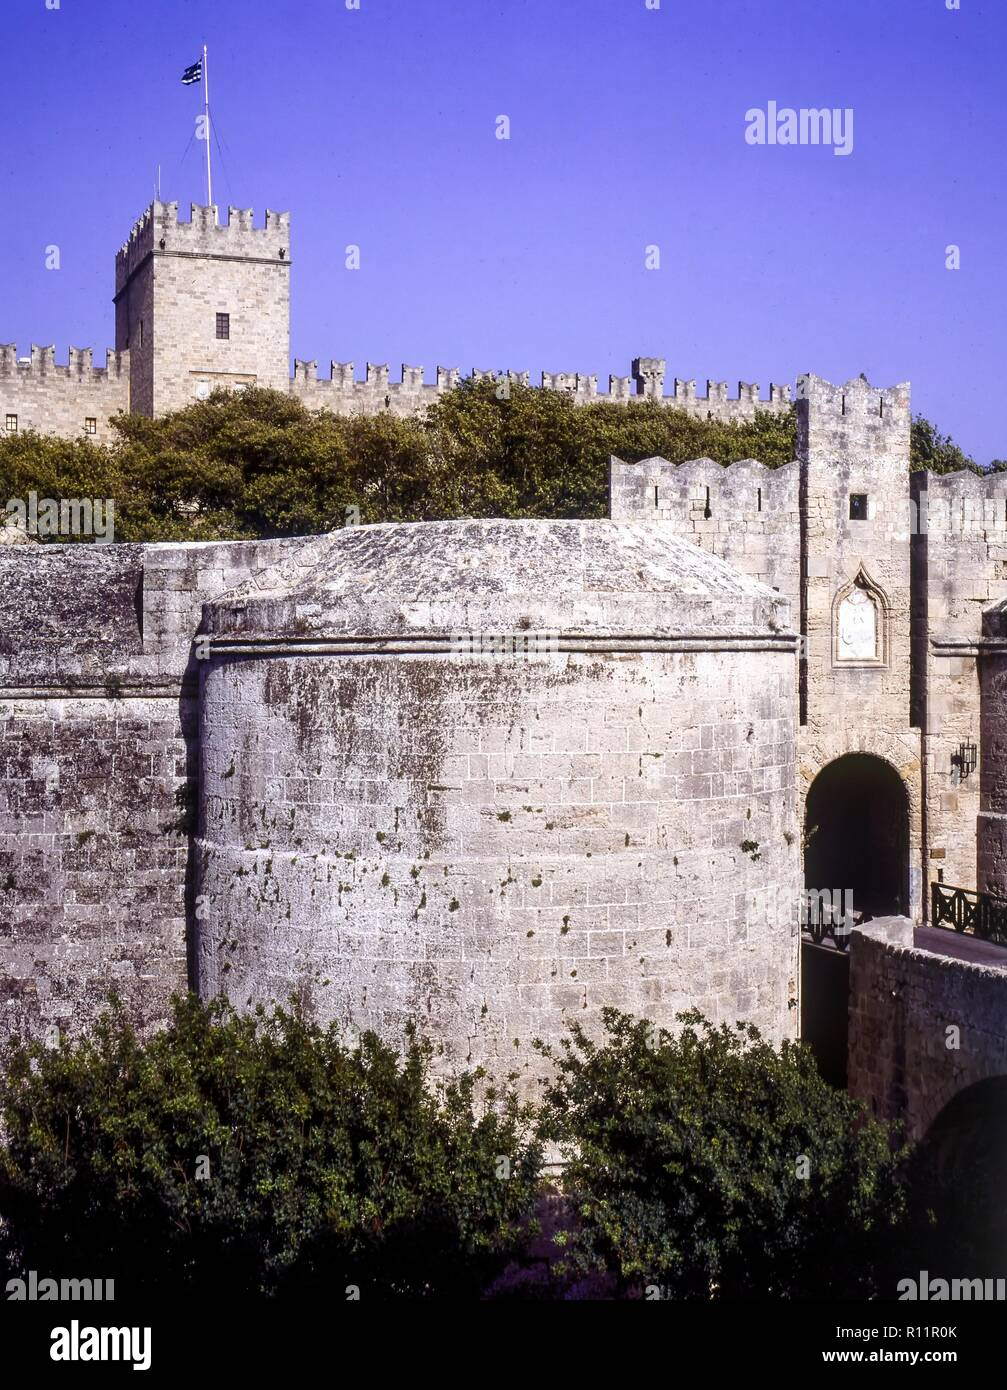 Rhodes Old Town in Greece, is a Medieval Citadel surrounded by Moats and 2 miles of Walls. Eleven gates, including the 16th Century d Amboise Gate ent - Stock Image